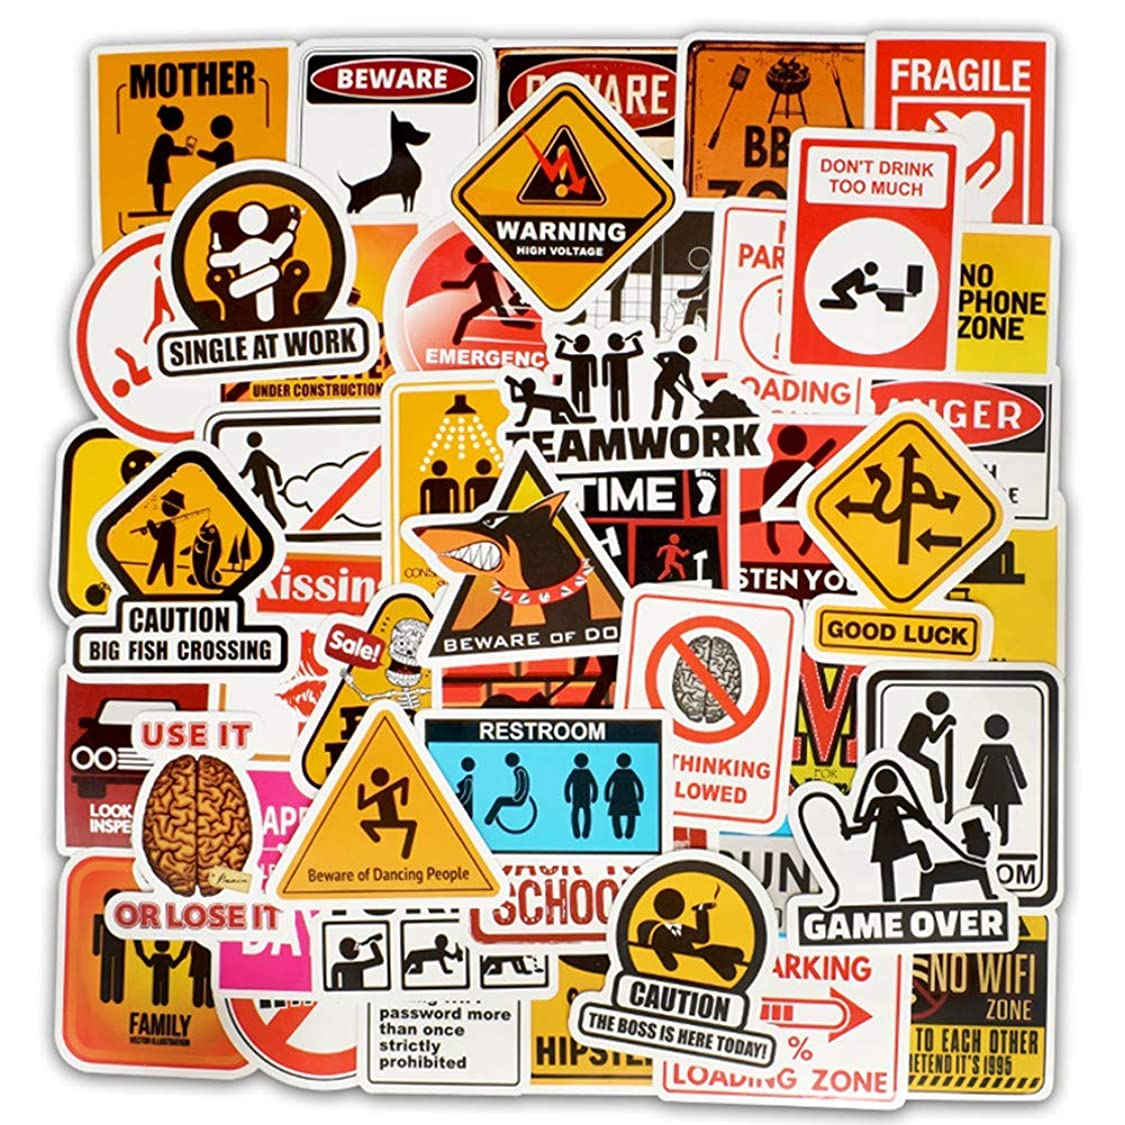 Ehope Traffic Signs Danger Warning Stickers Comic Computer Stickers Vinyl Stickers for Car Bike Laptop MacBook Skateboard Luggage Decal Graffiti Patches Stickers (50 pcs Warning Sign Style) ic97445107349934